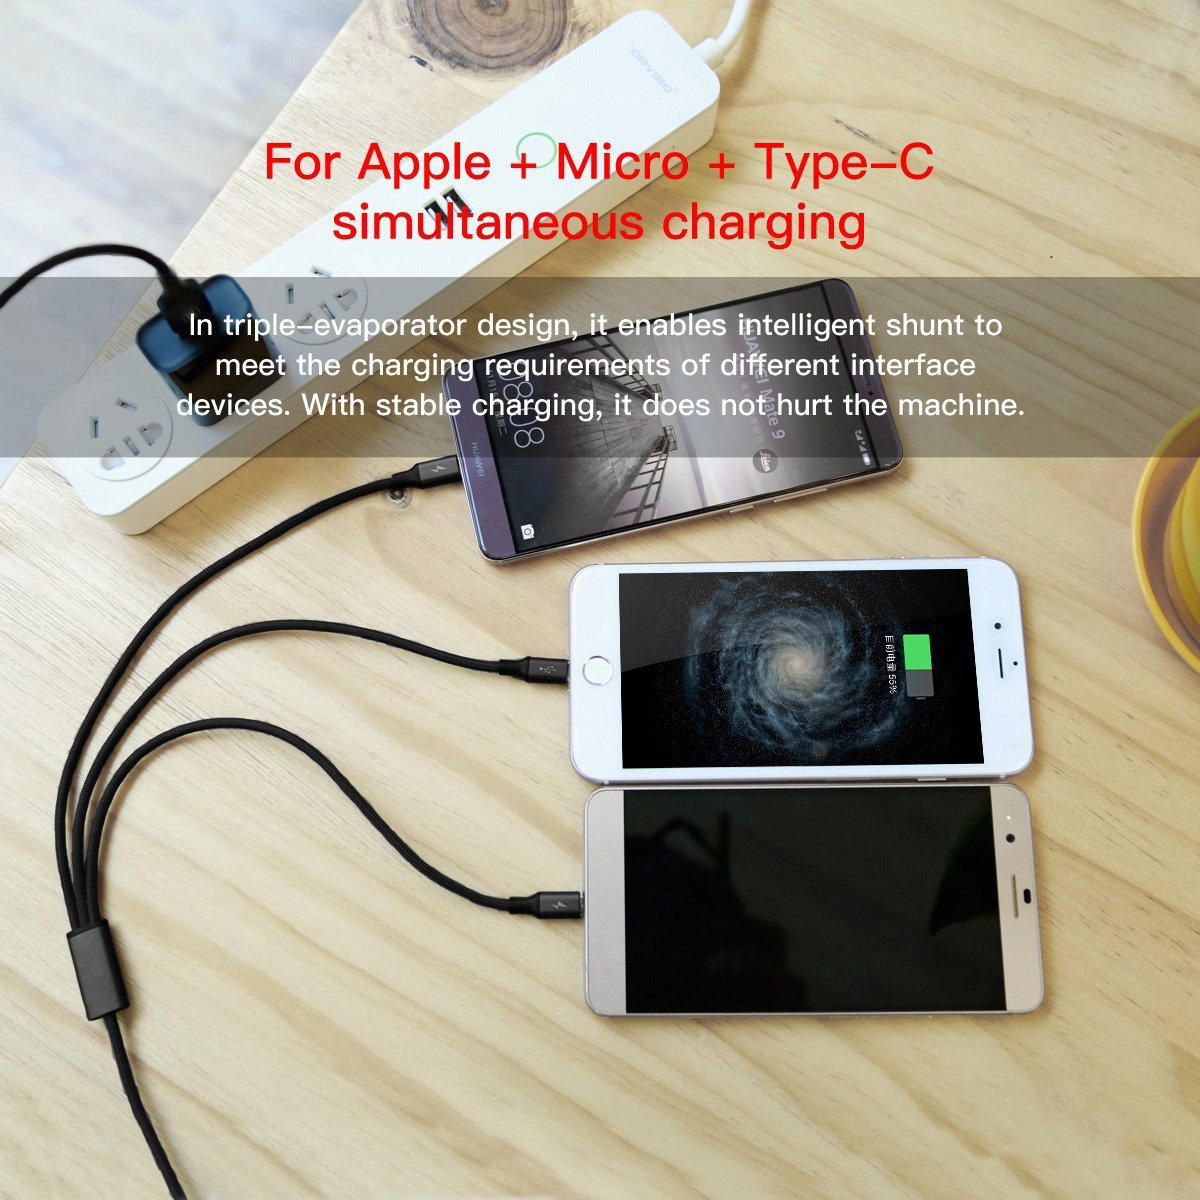 Multi Usb Cableusb To Lightning Micro C 3 In 1 Otg Metalik Fleco Braided Charging Cable For Iphone X 8 Plus 7 Ipad Macbook Galaxy S8 Note Lg